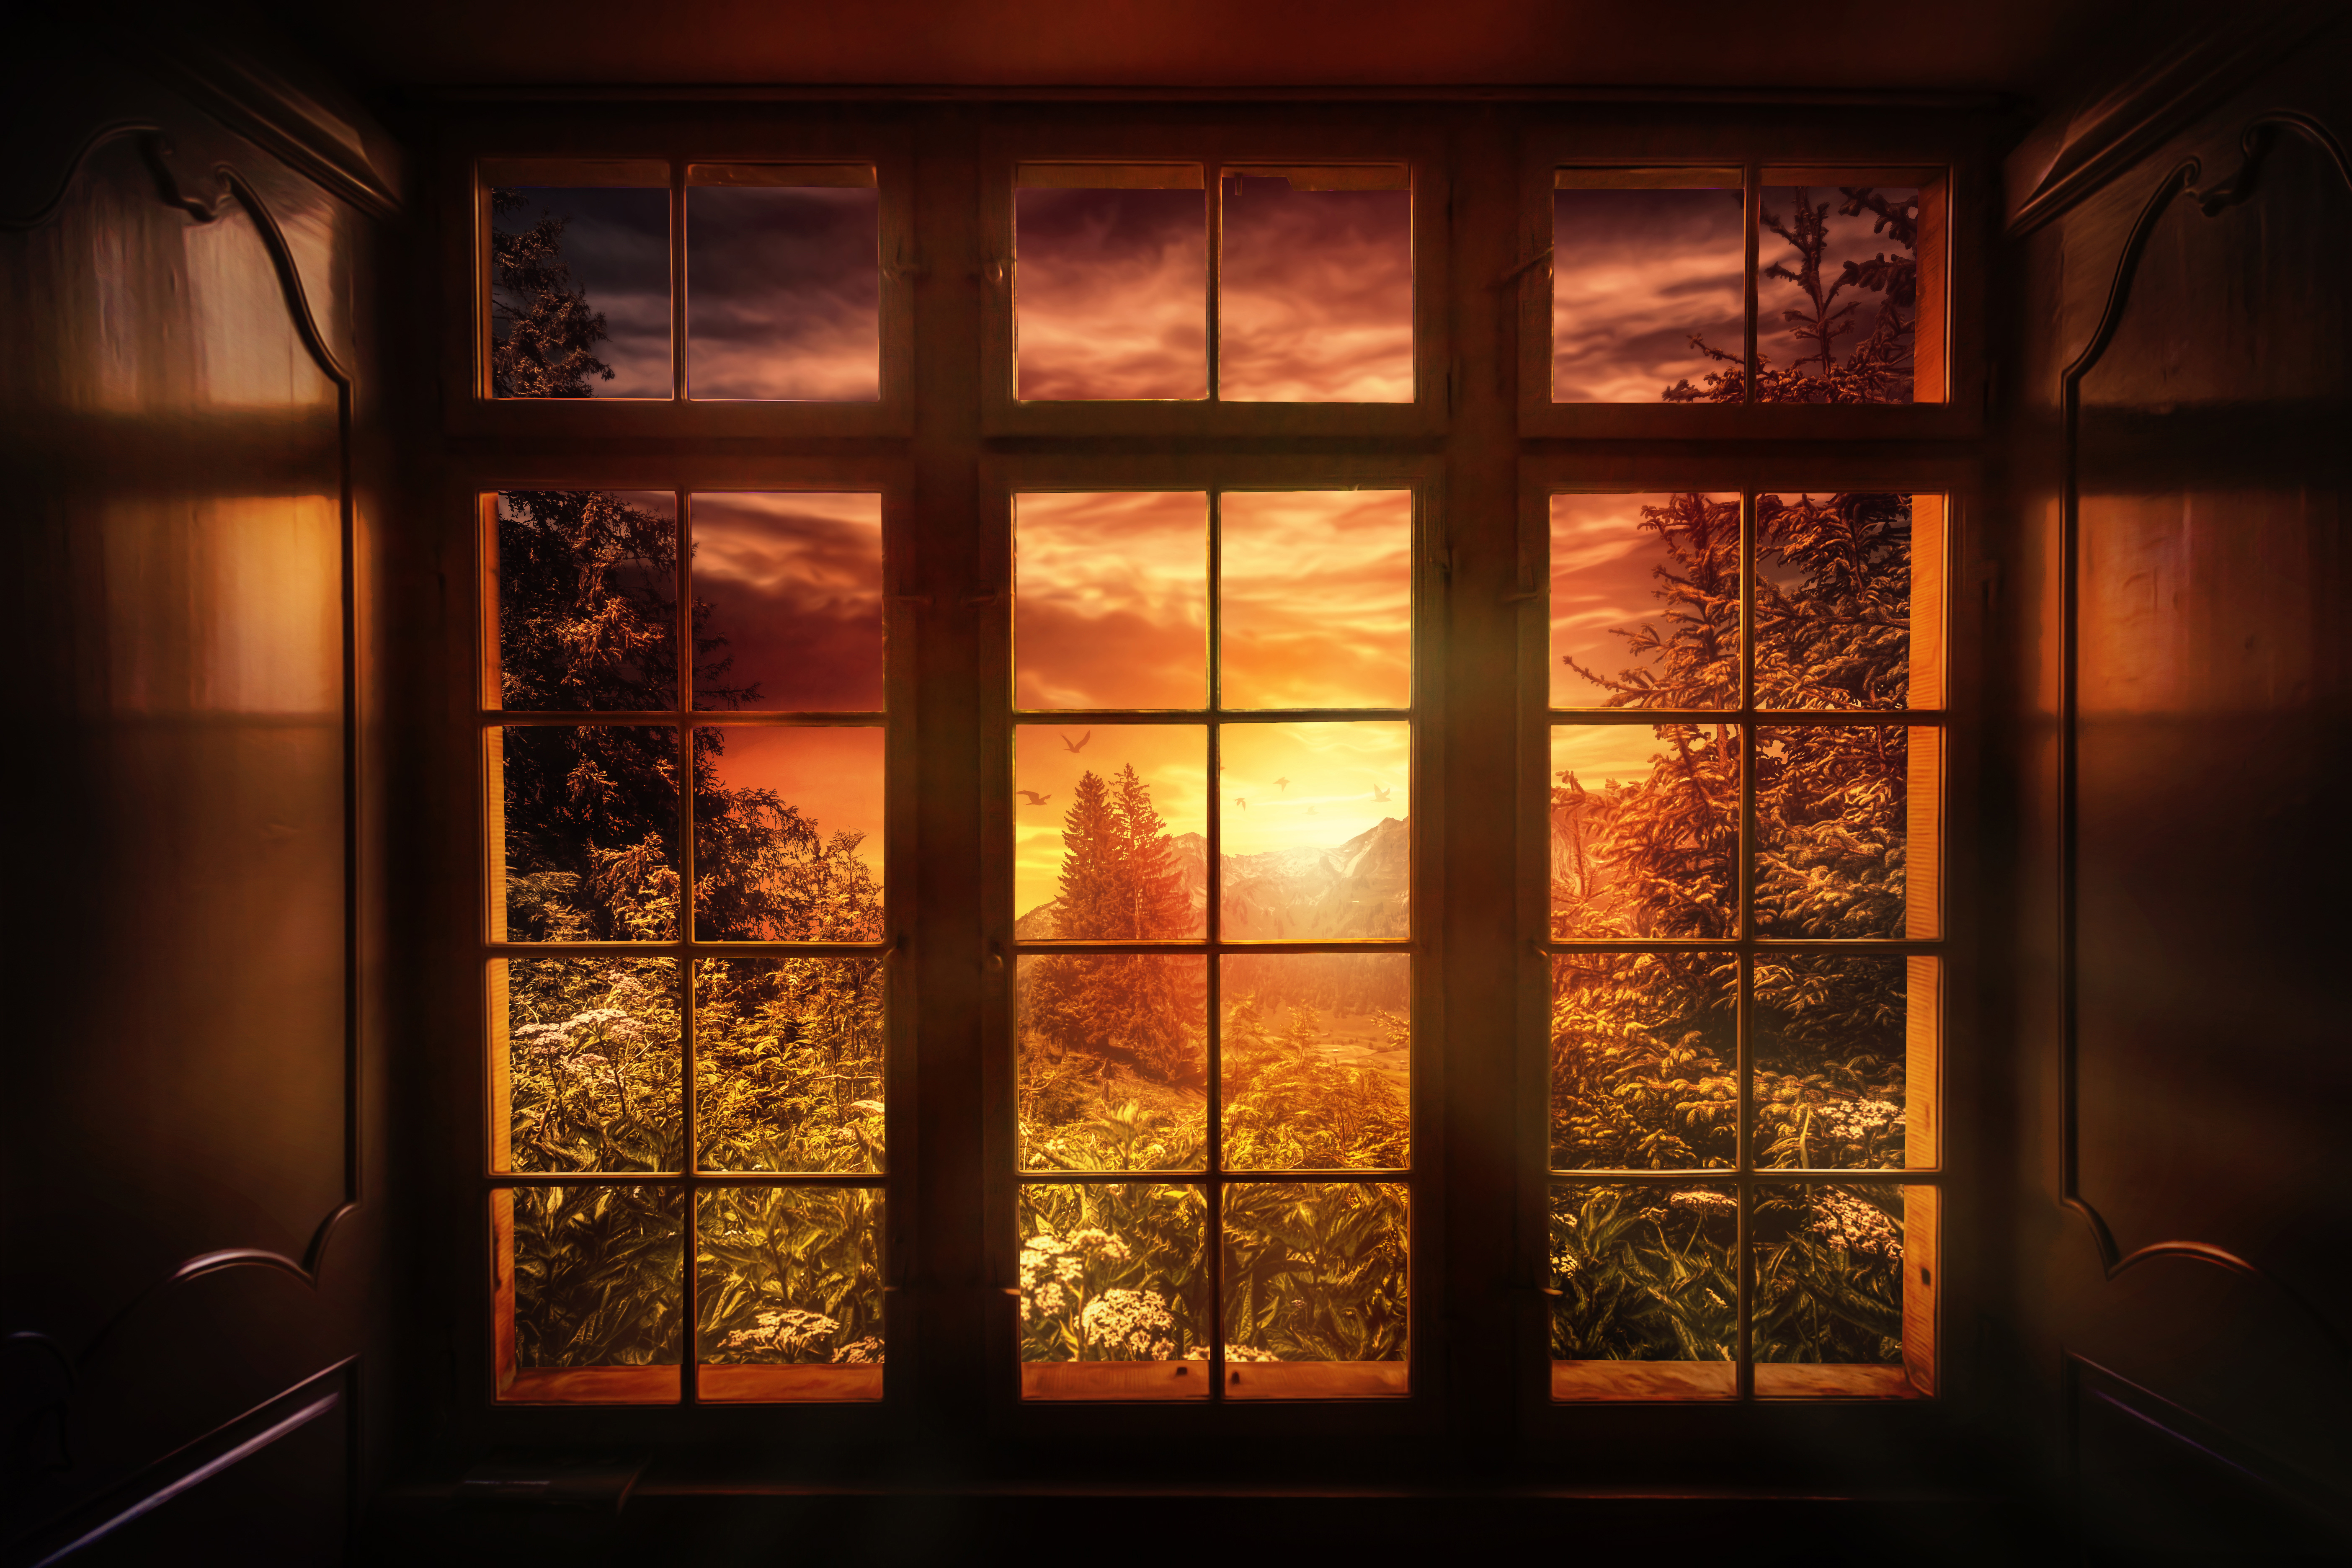 Window 5k retina ultra hd wallpaper and background image for Fenster 400x400